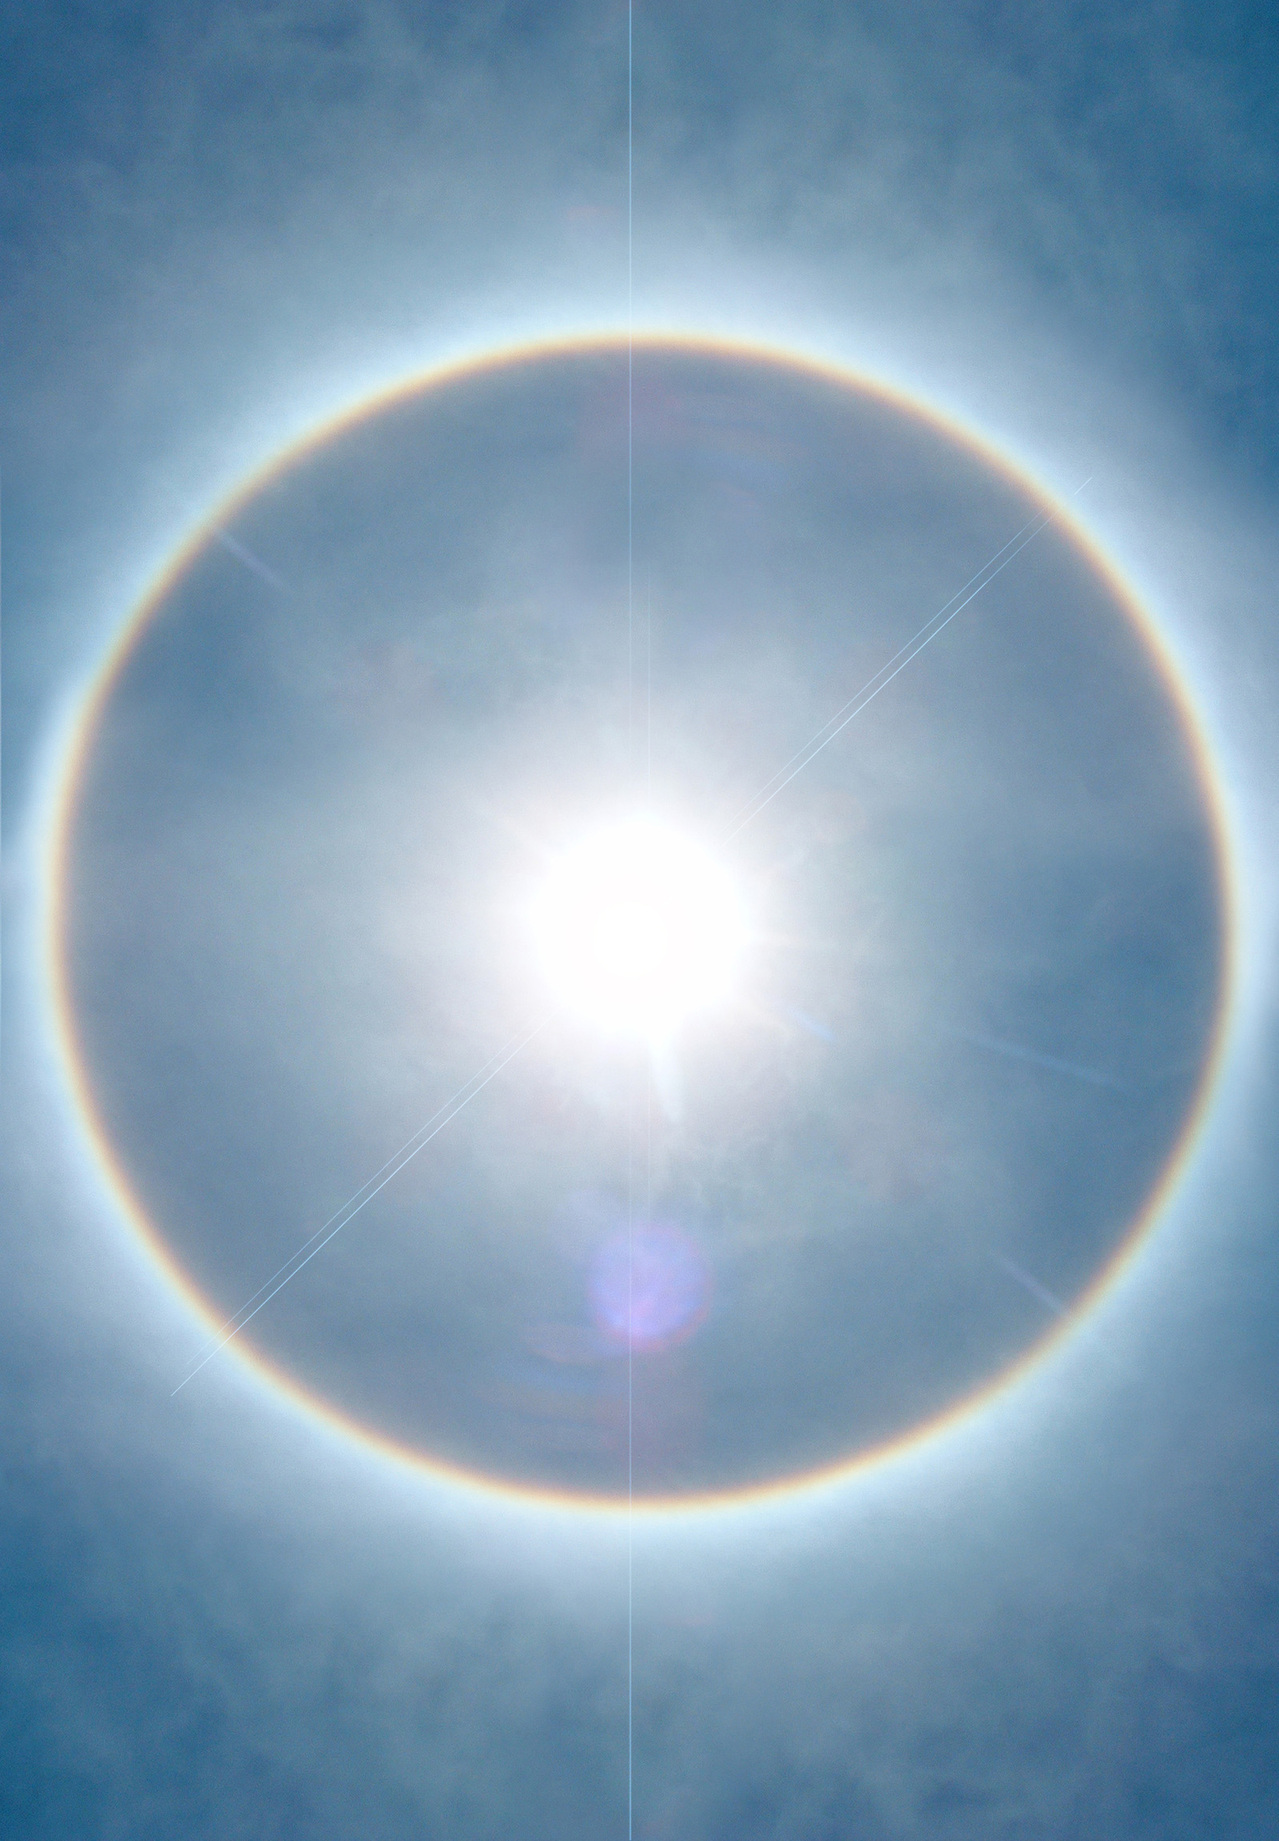 sun-with-rainbow-halo-1517520-1279x1841.jpg